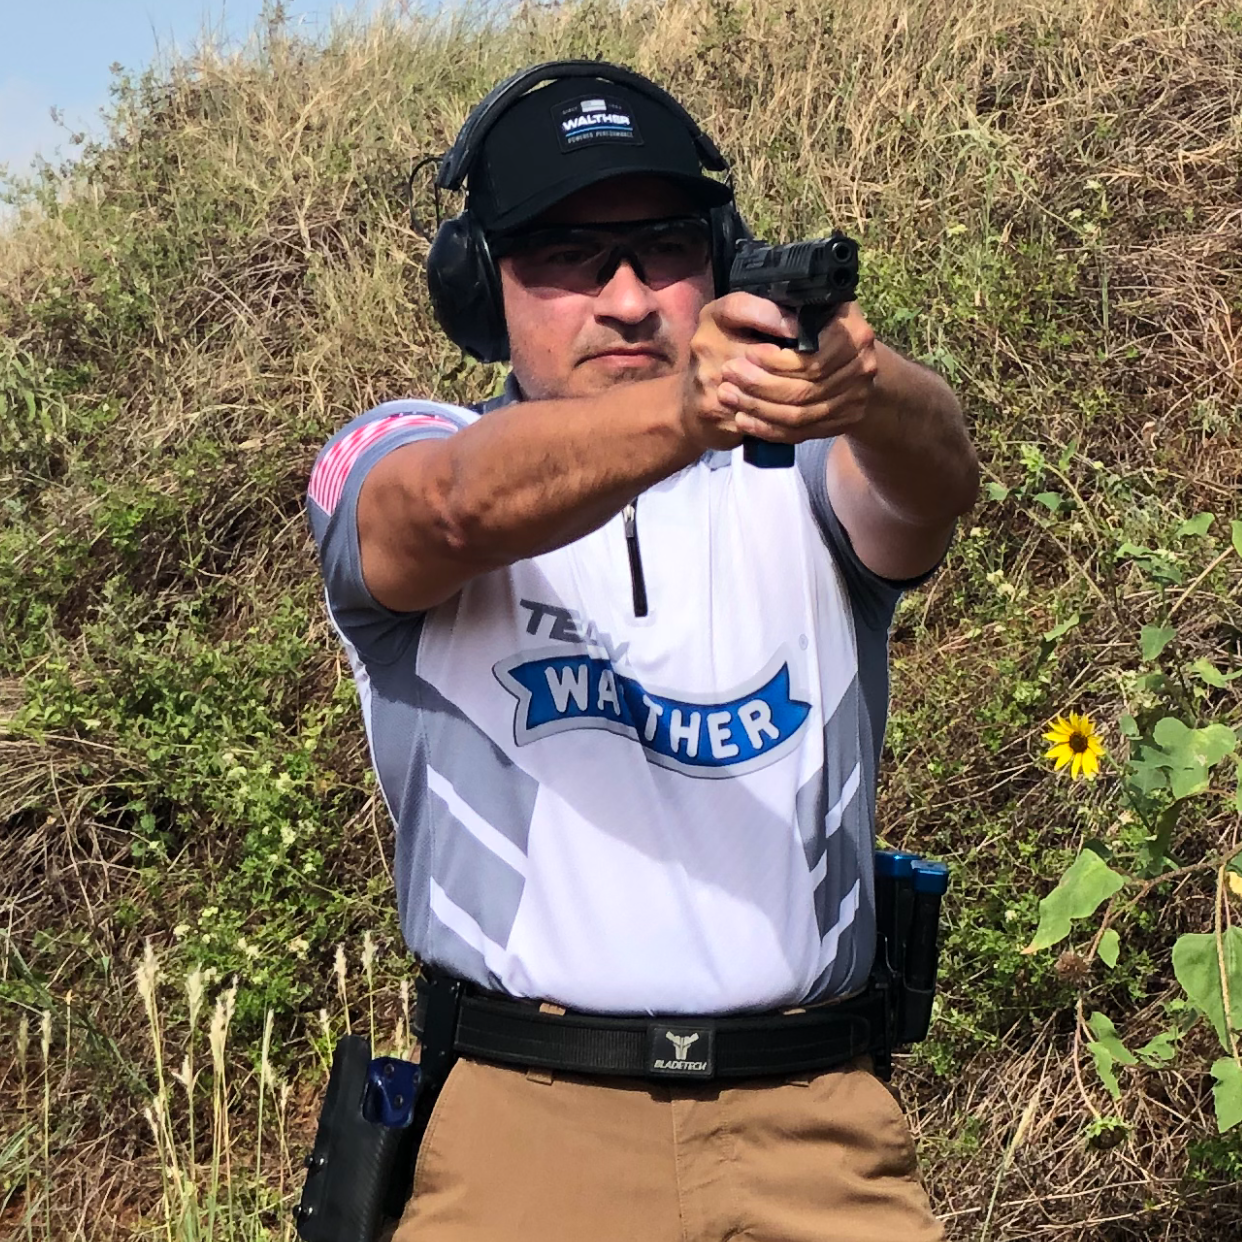 Walther Team Albert Salinas